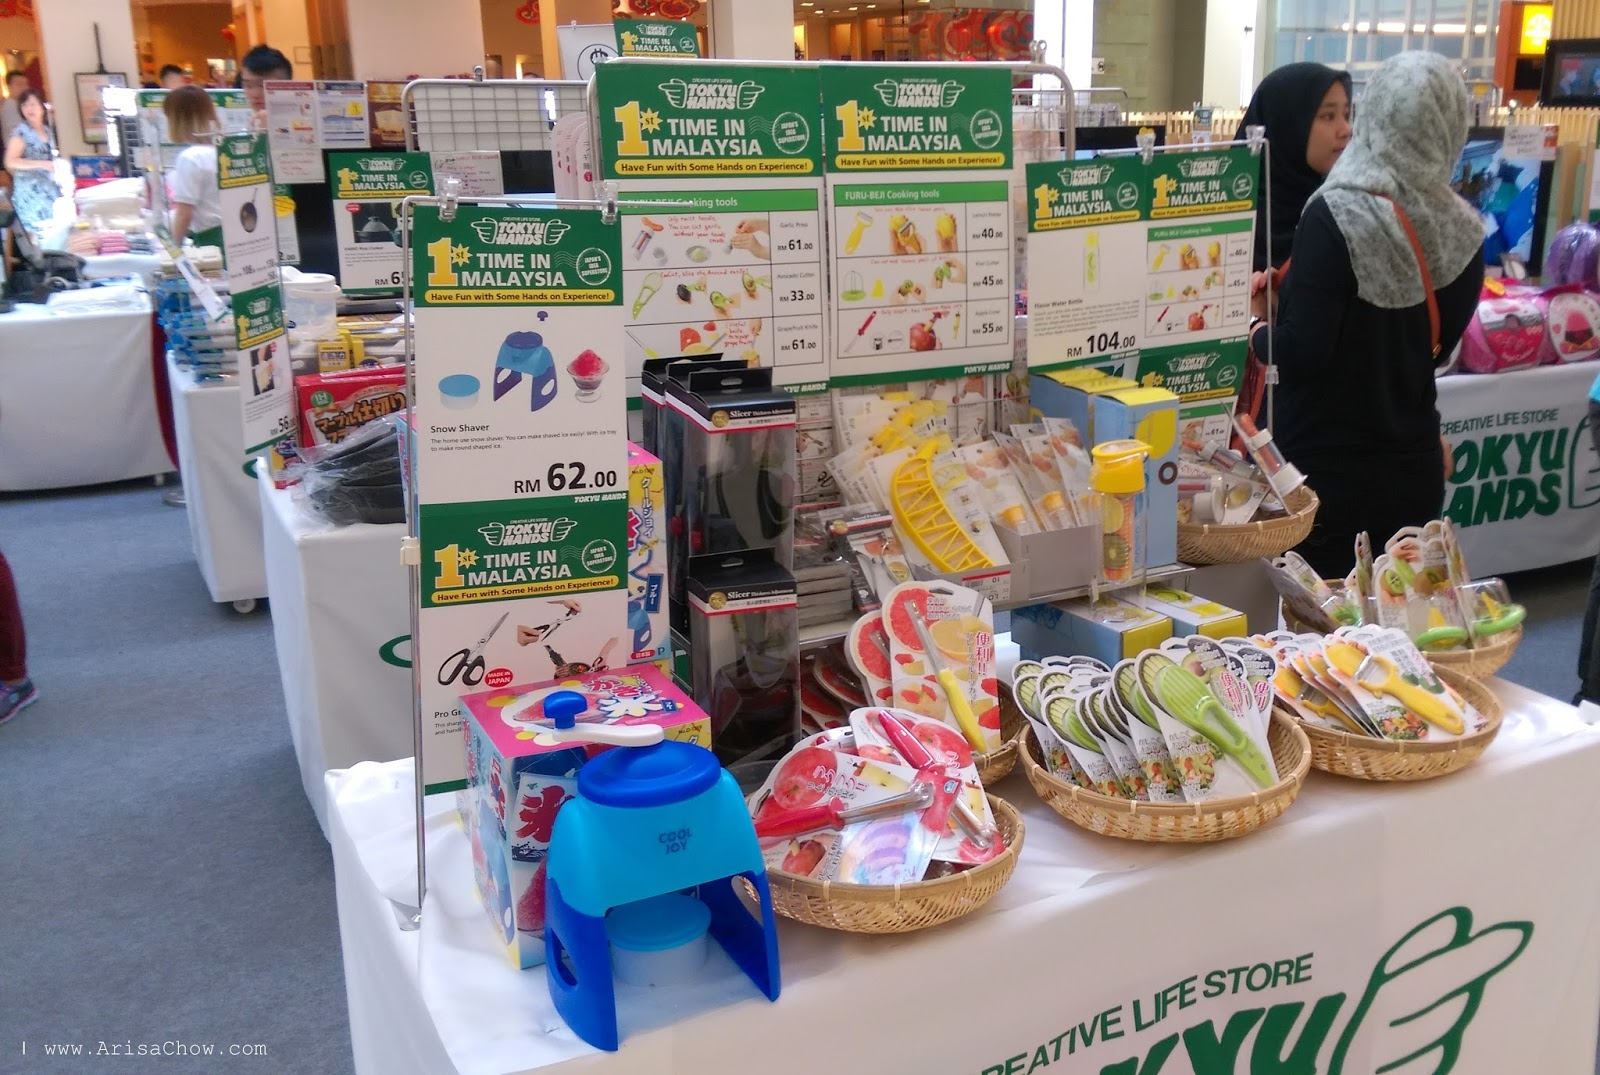 TOKYU HANDS in Malaysia / Welcome